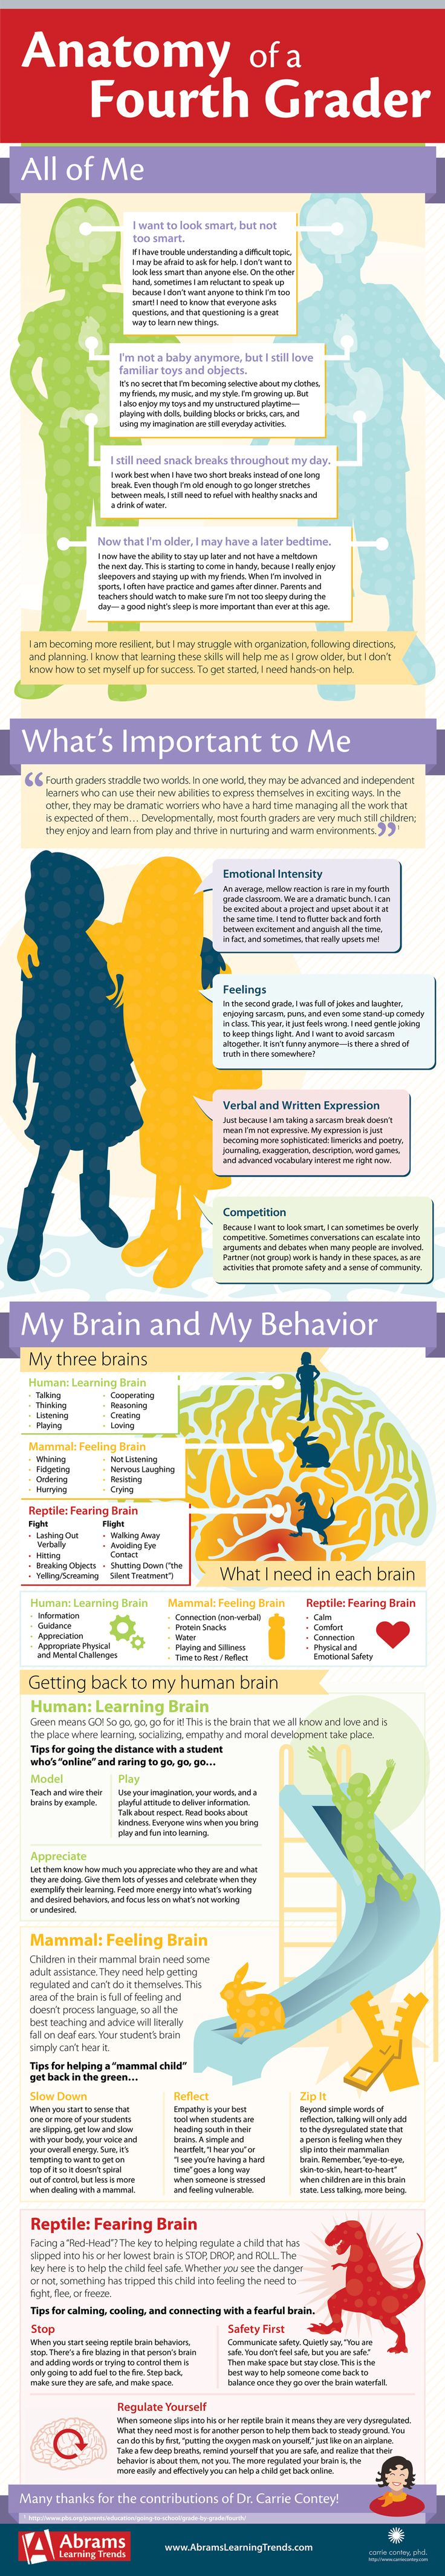 #Infographic with physical, social, cognitive, and emotional norms for #fourthgrade. So helpful! Fourth graders are the natural worriers of the building. Most fourth graders are still very much children, which can make it challenging for them to respond appropriately to the increased academic expectations and social pressures found in this grade.